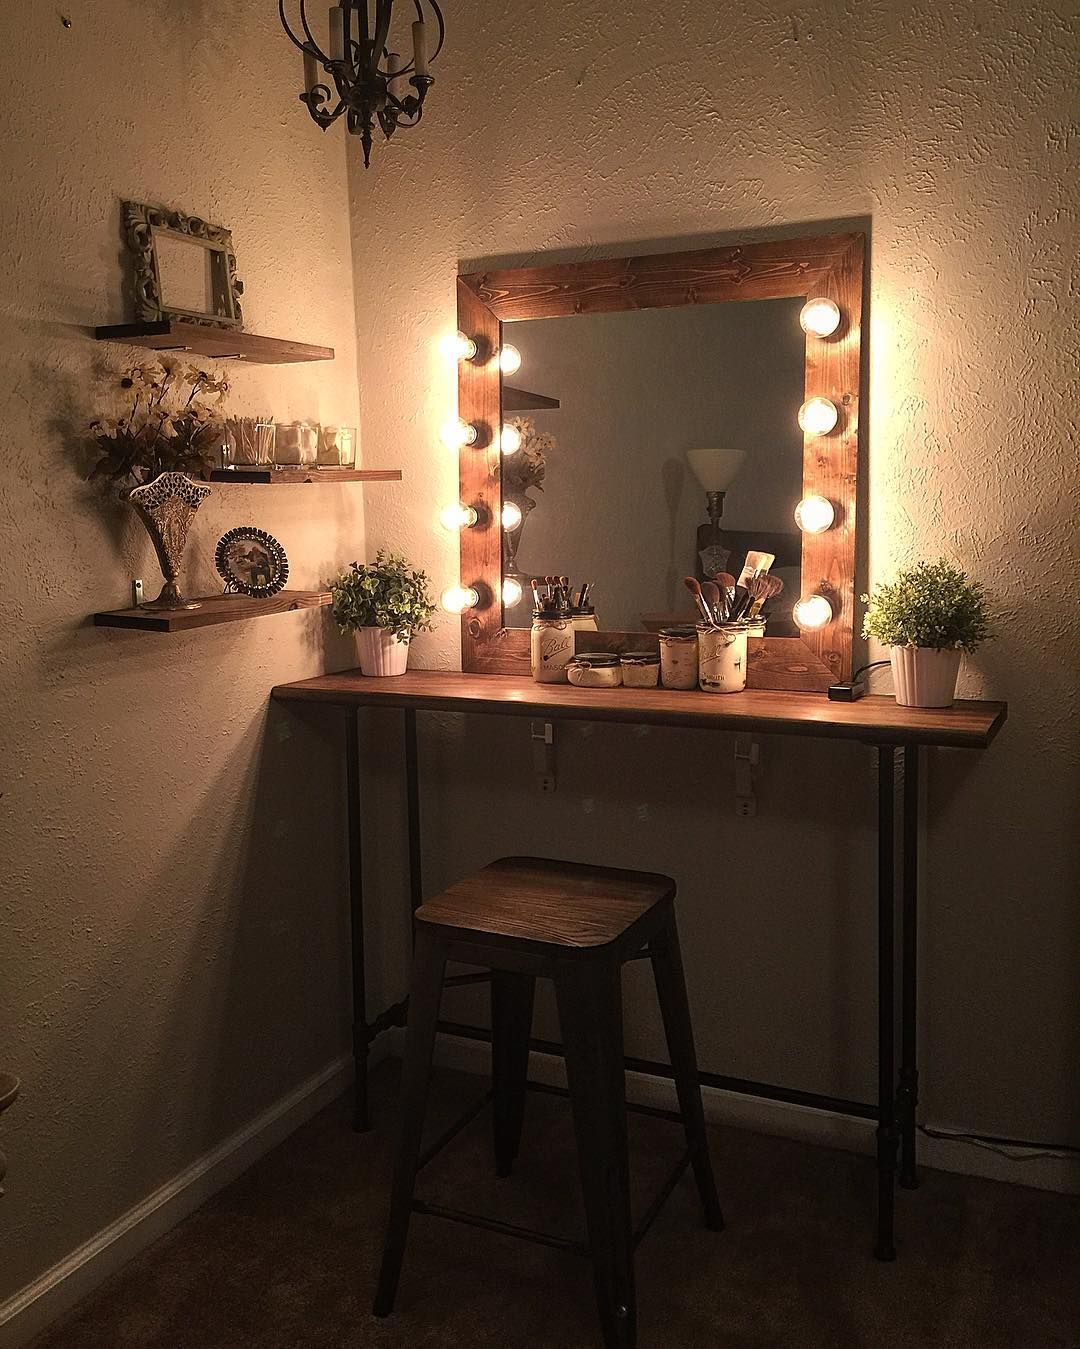 Wall Vanity Mirror With Lights cute easy simple diy wood rustic vanity mirror with hollywood